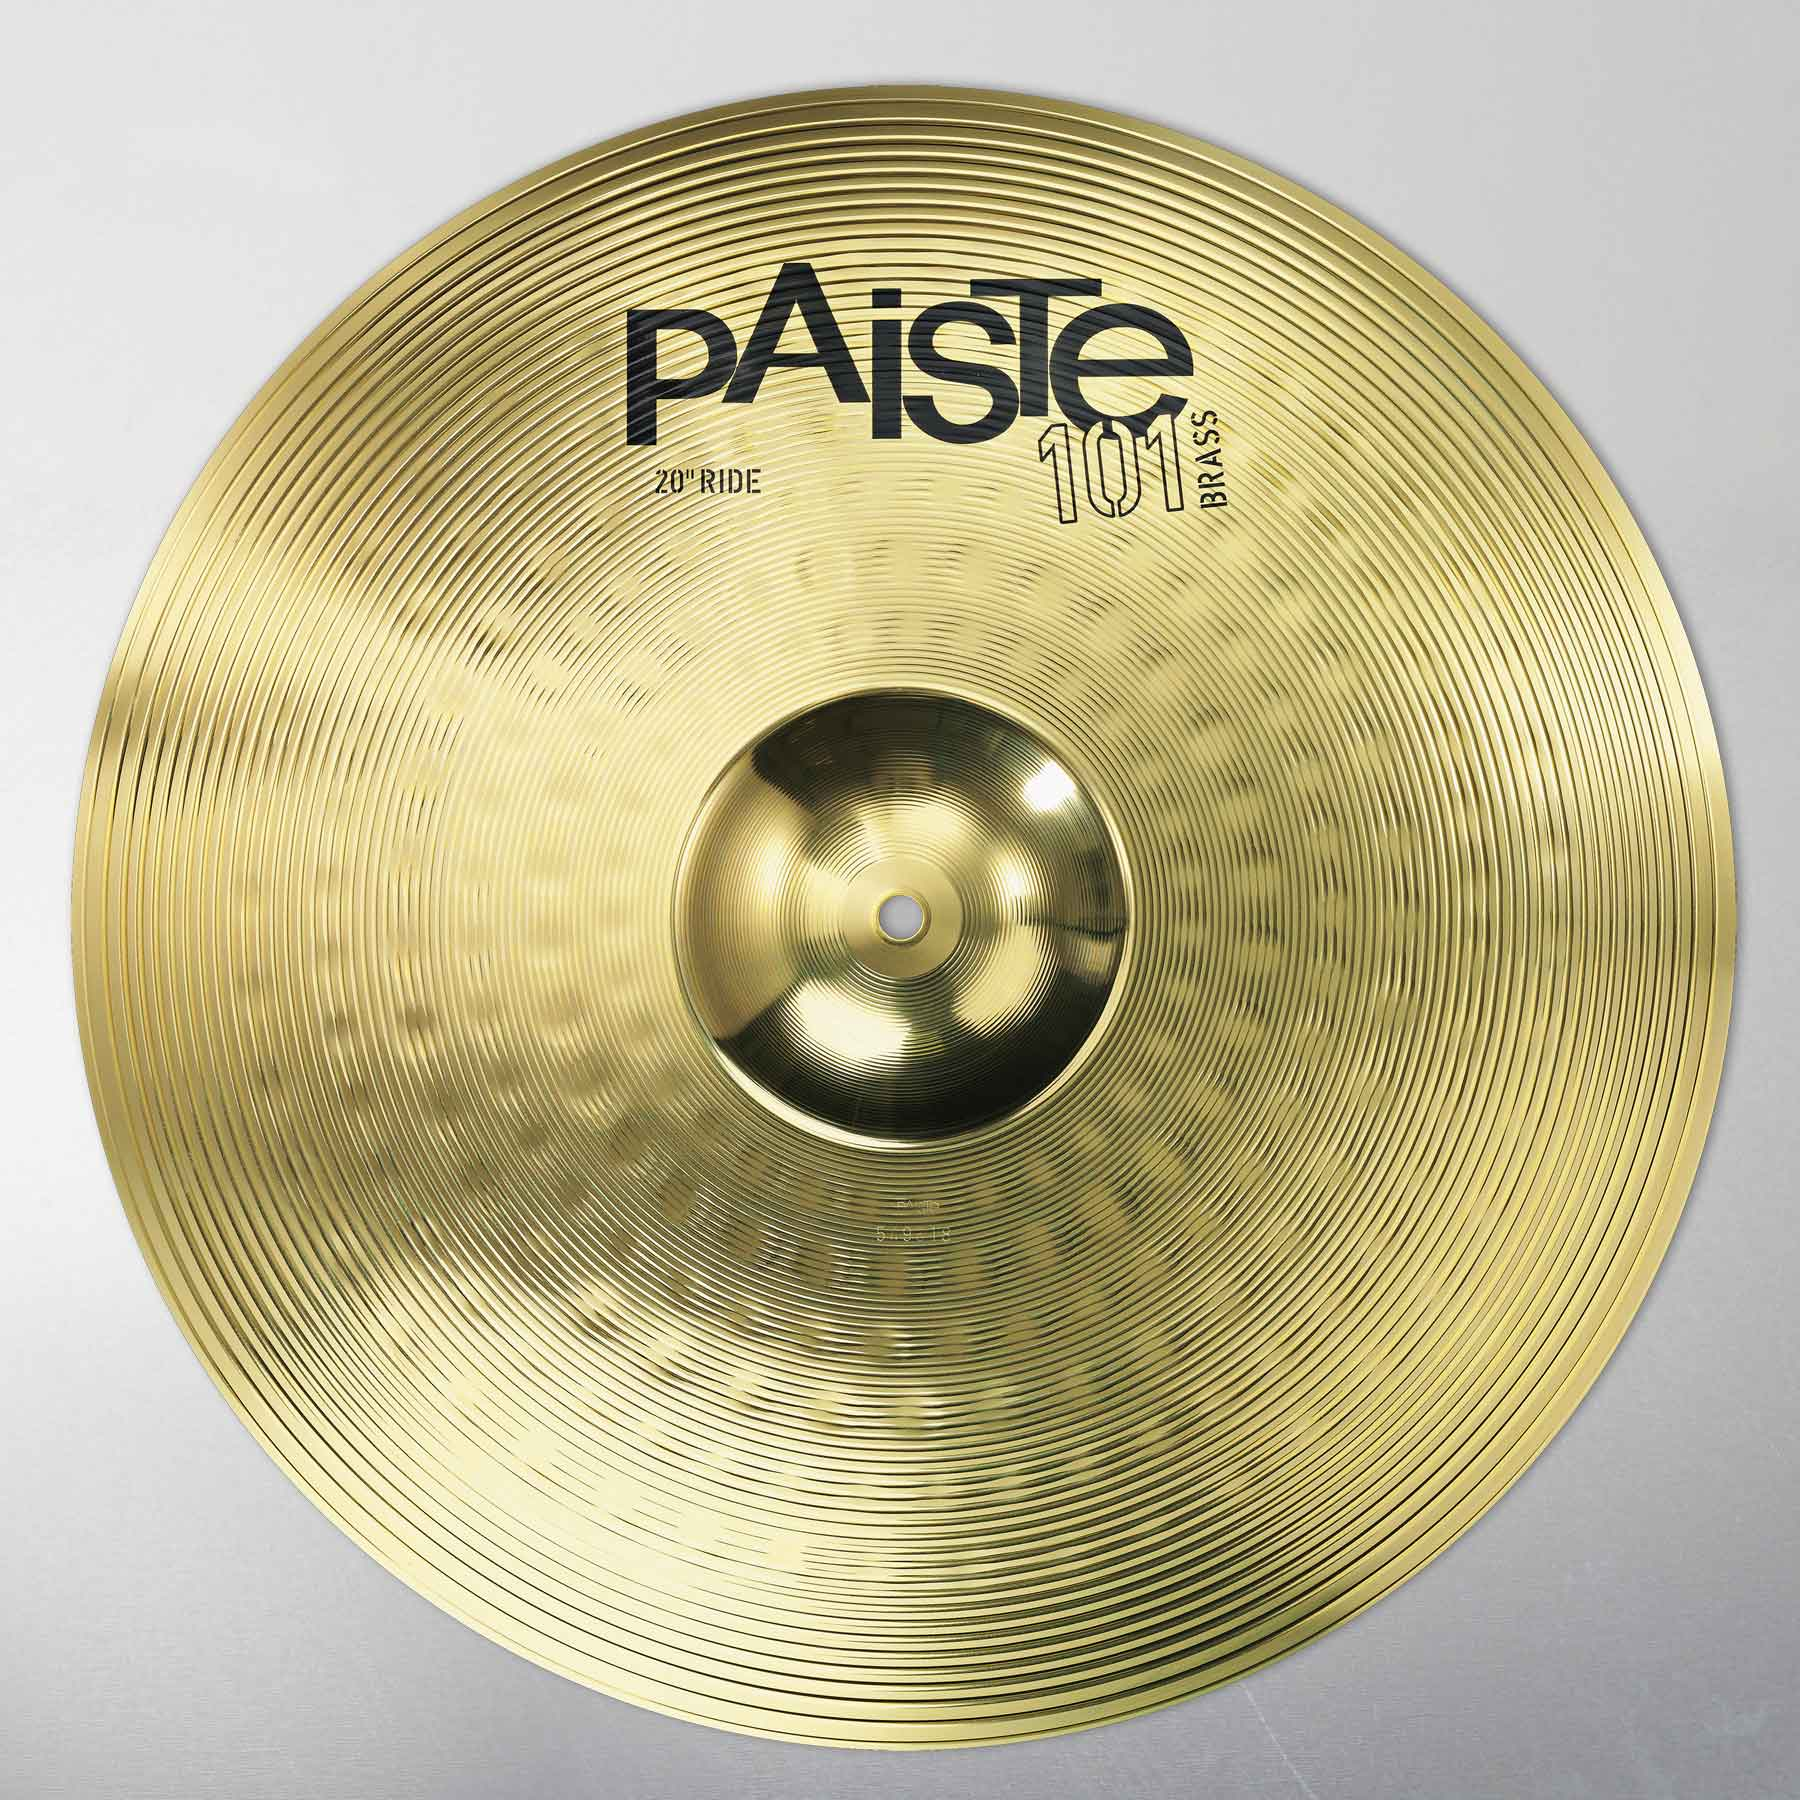 Paiste Logo 101 Design Corporate Design